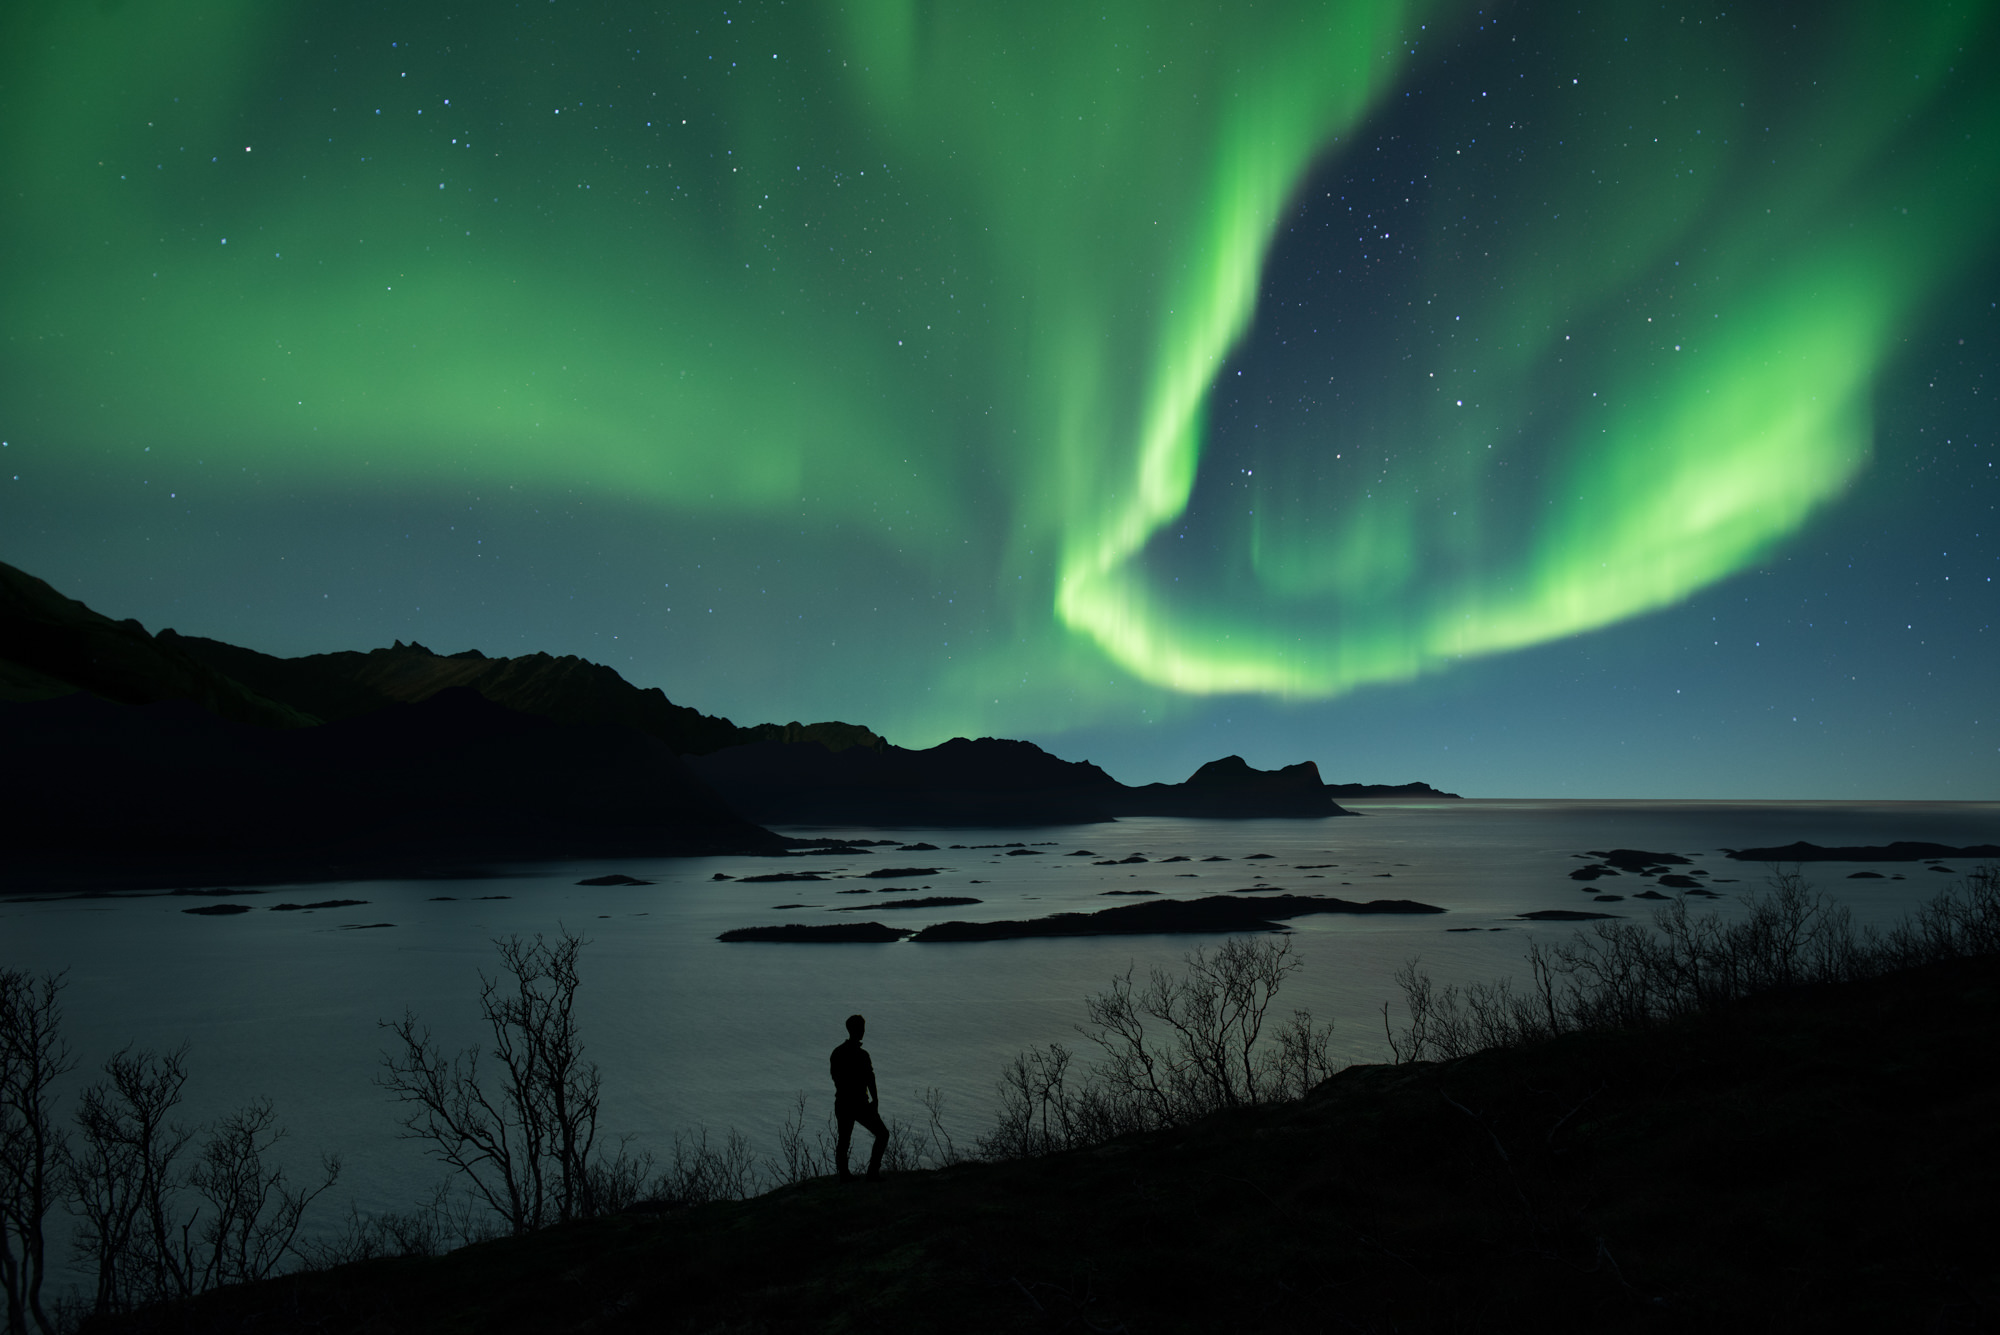 A man watches the aurora across a fjord